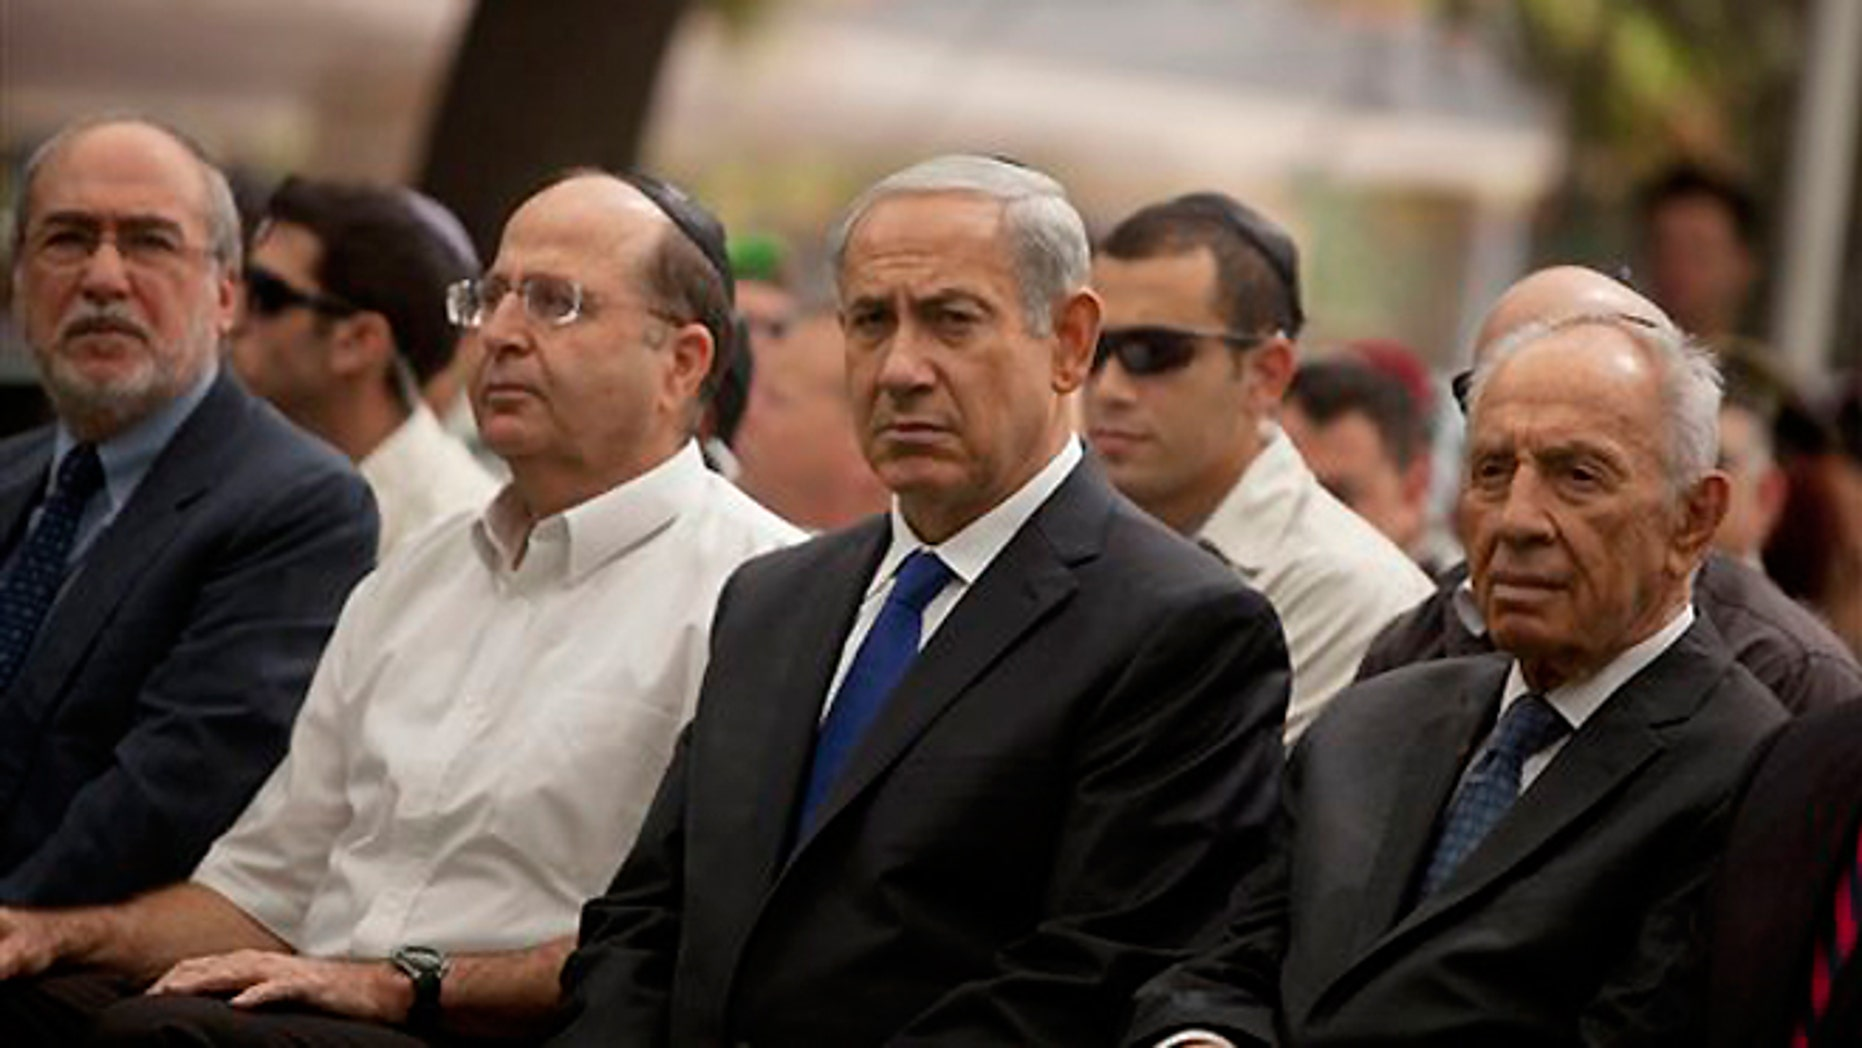 FILE -- Sept. 15, 2013: Israeli Prime Minister Benjamin Netanyahu, center, sits with Israeli President Shimon Peres, right, and Israeli Defense Minister Moshe Yaalon during the state memorial ceremony for soldiers, fallen during the 1973 Arab-Israel War, which Israelis call the Yom Kippur War, in Jerusalem.